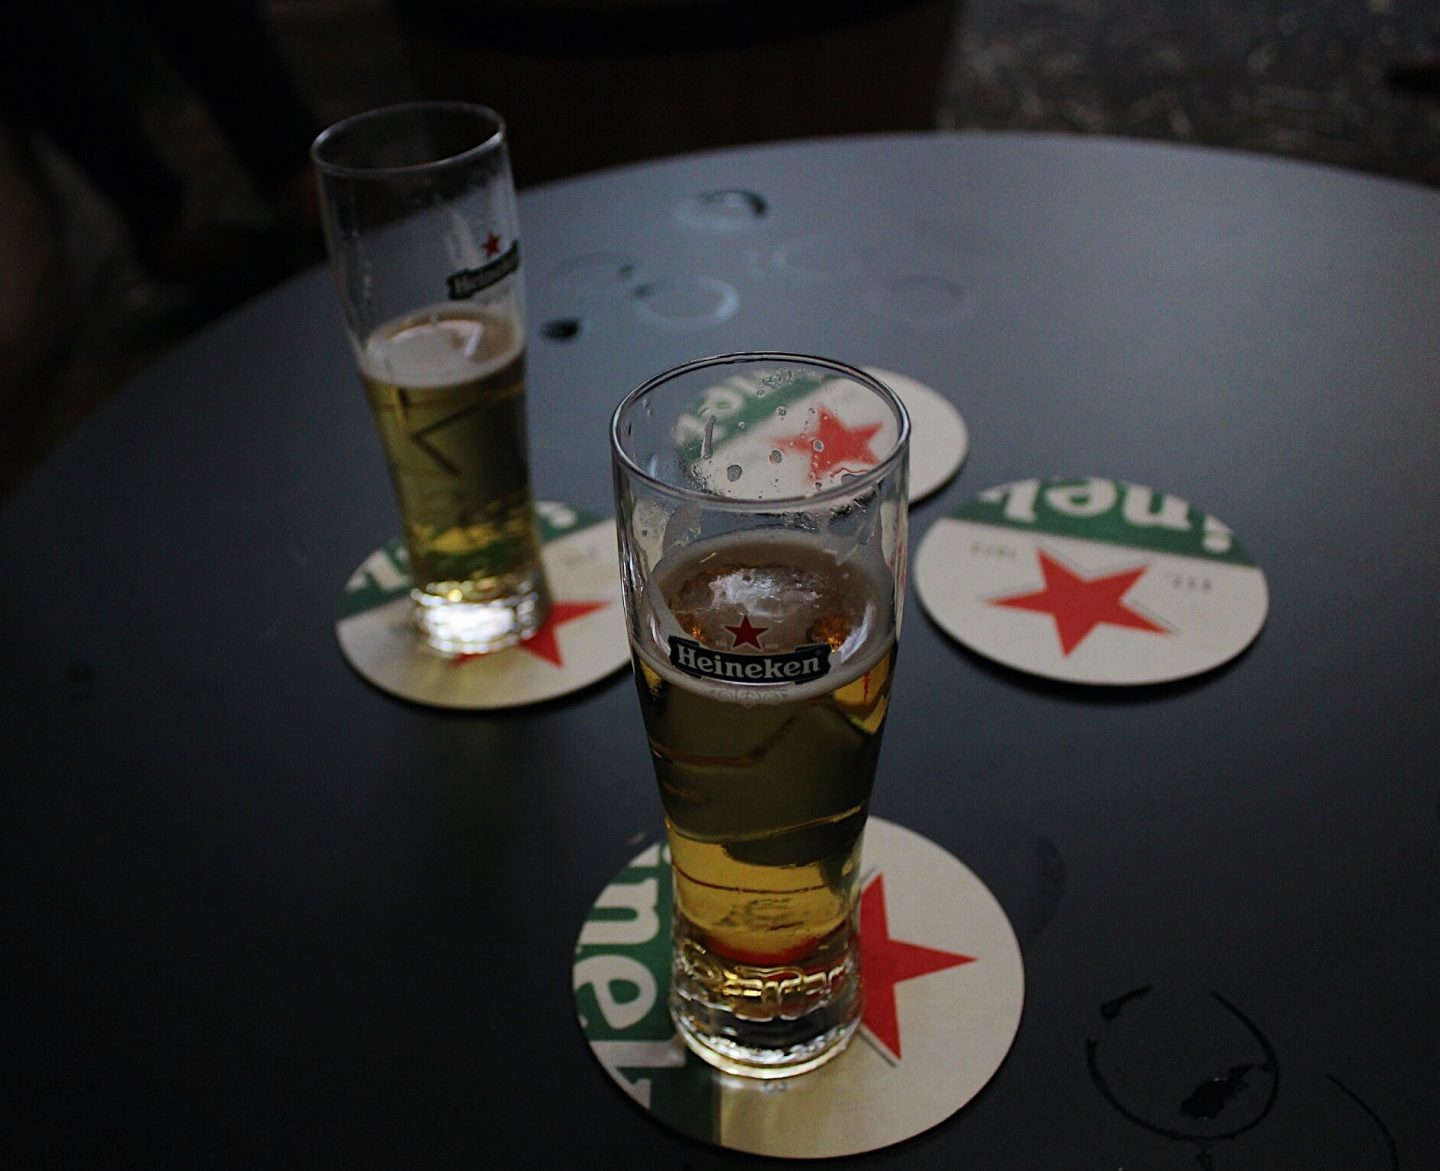 Trying Heineken beer after the tour!